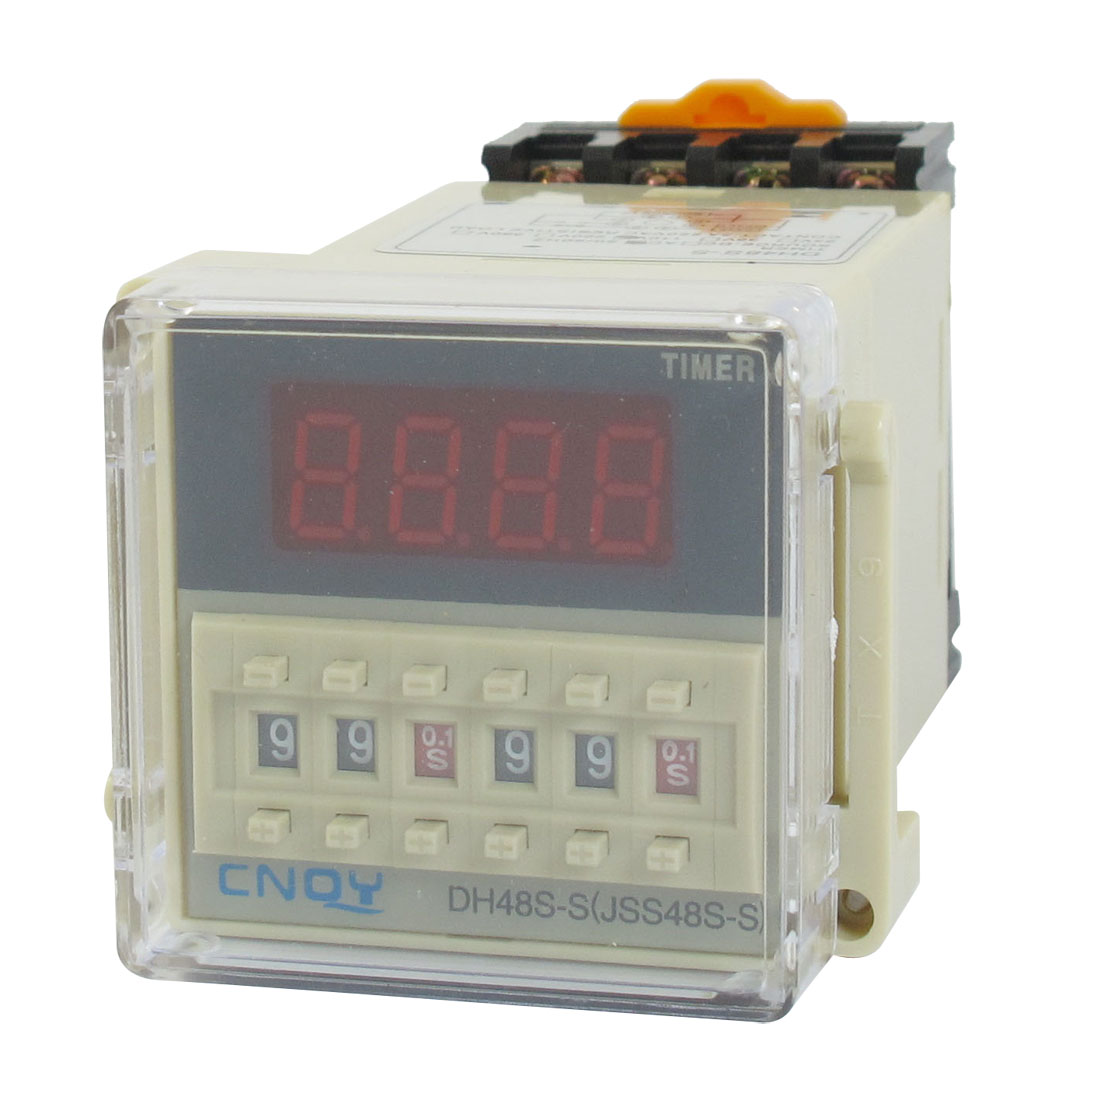 DH48S-S LCD Display Digital Time Timing Delay Relay 0.1S-99H 110VAC w Base